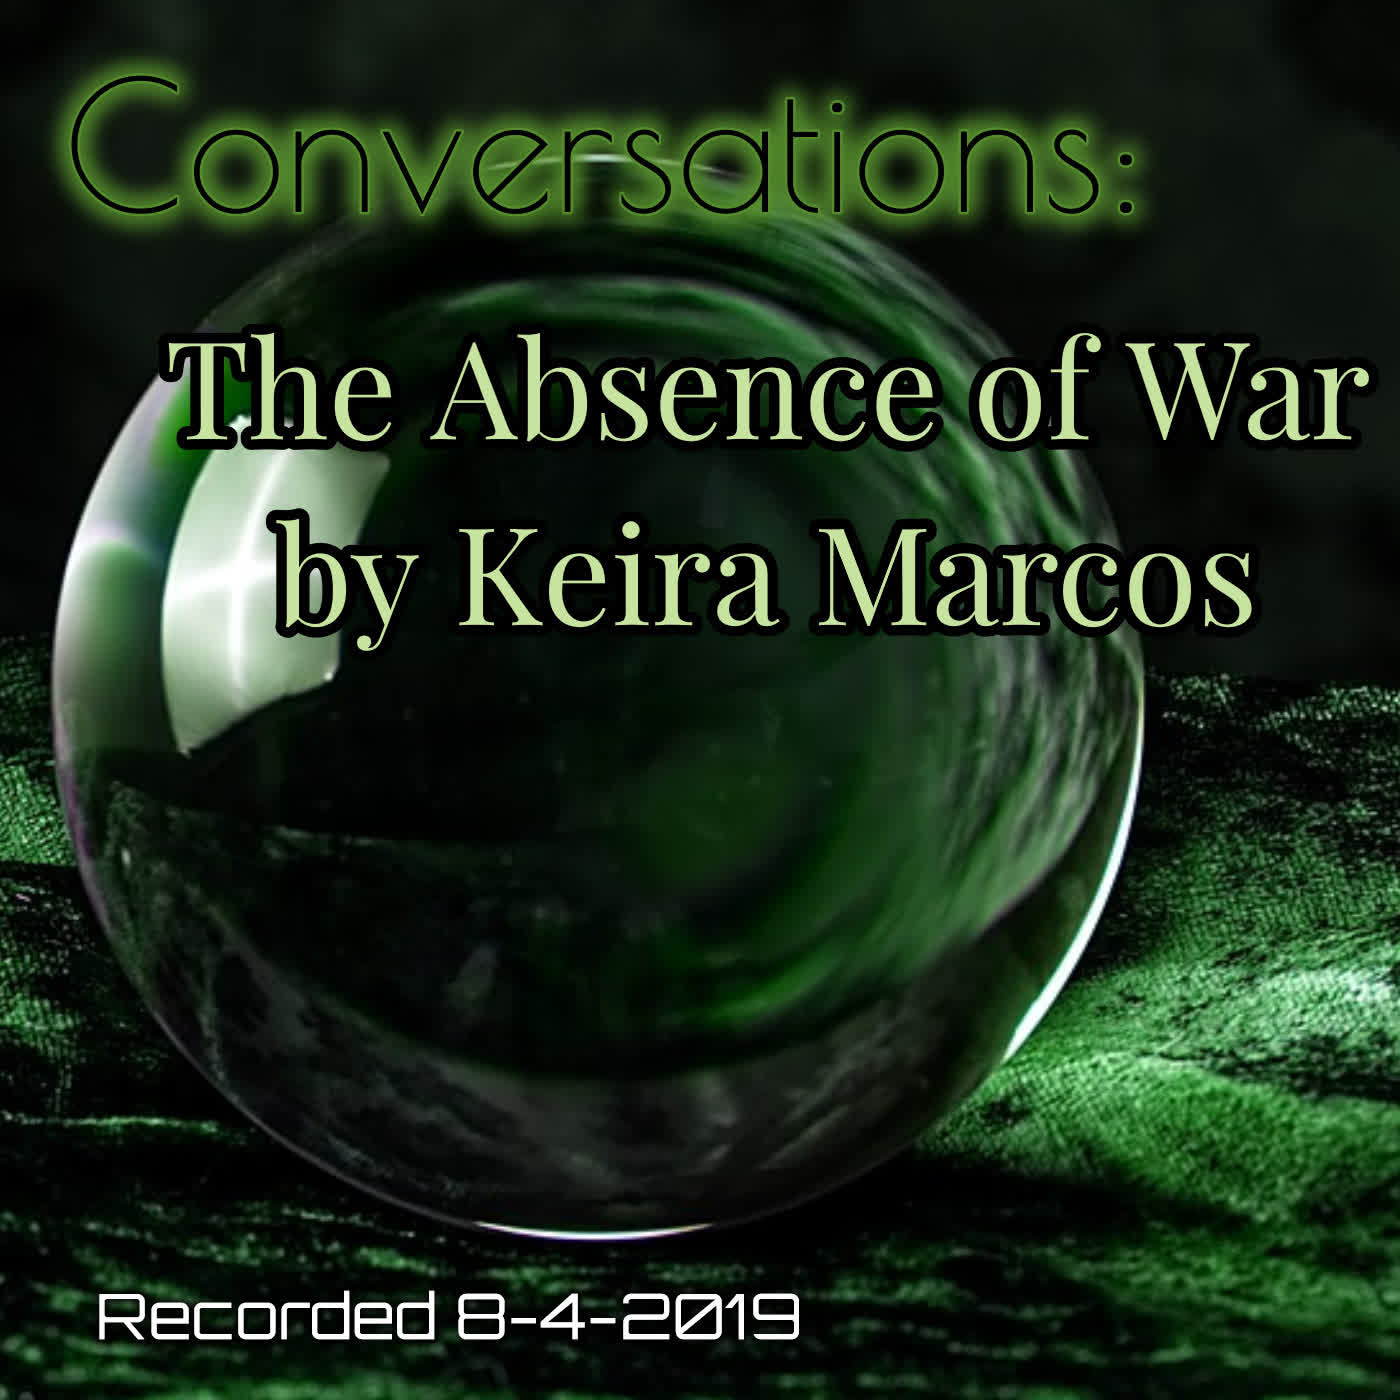 Conversations: The Absence of War by Keira Marcos